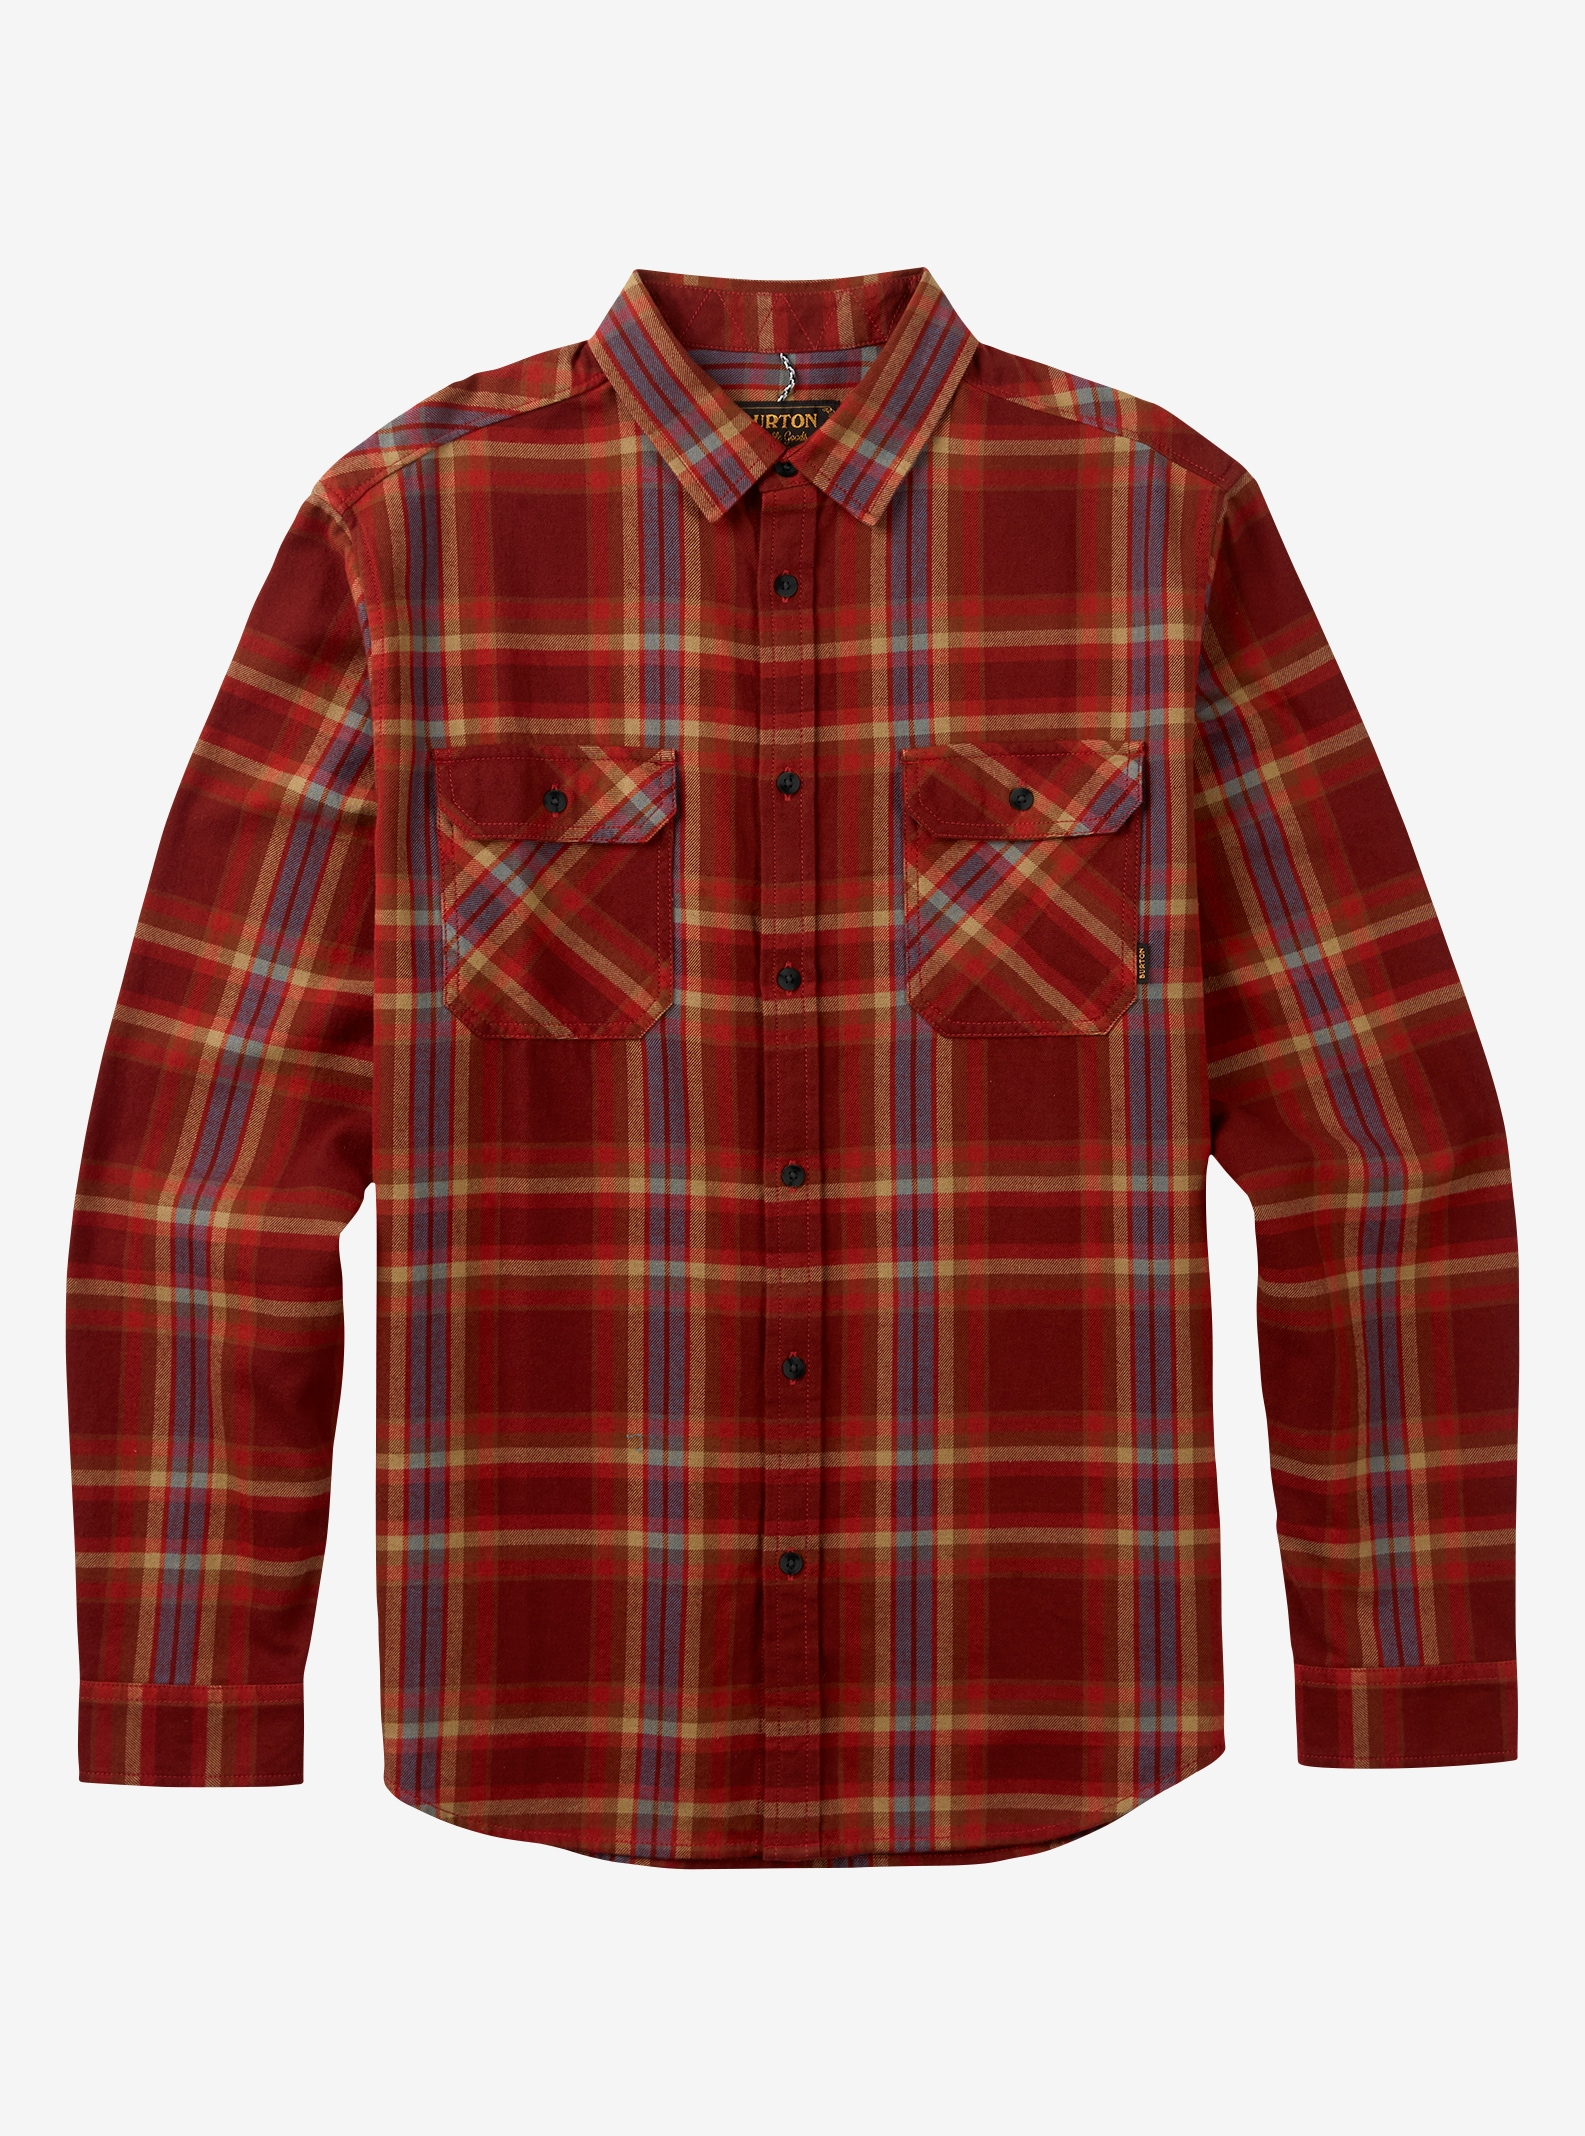 Men's Burton Brighton Flannel shown in Fired Brick Balsam